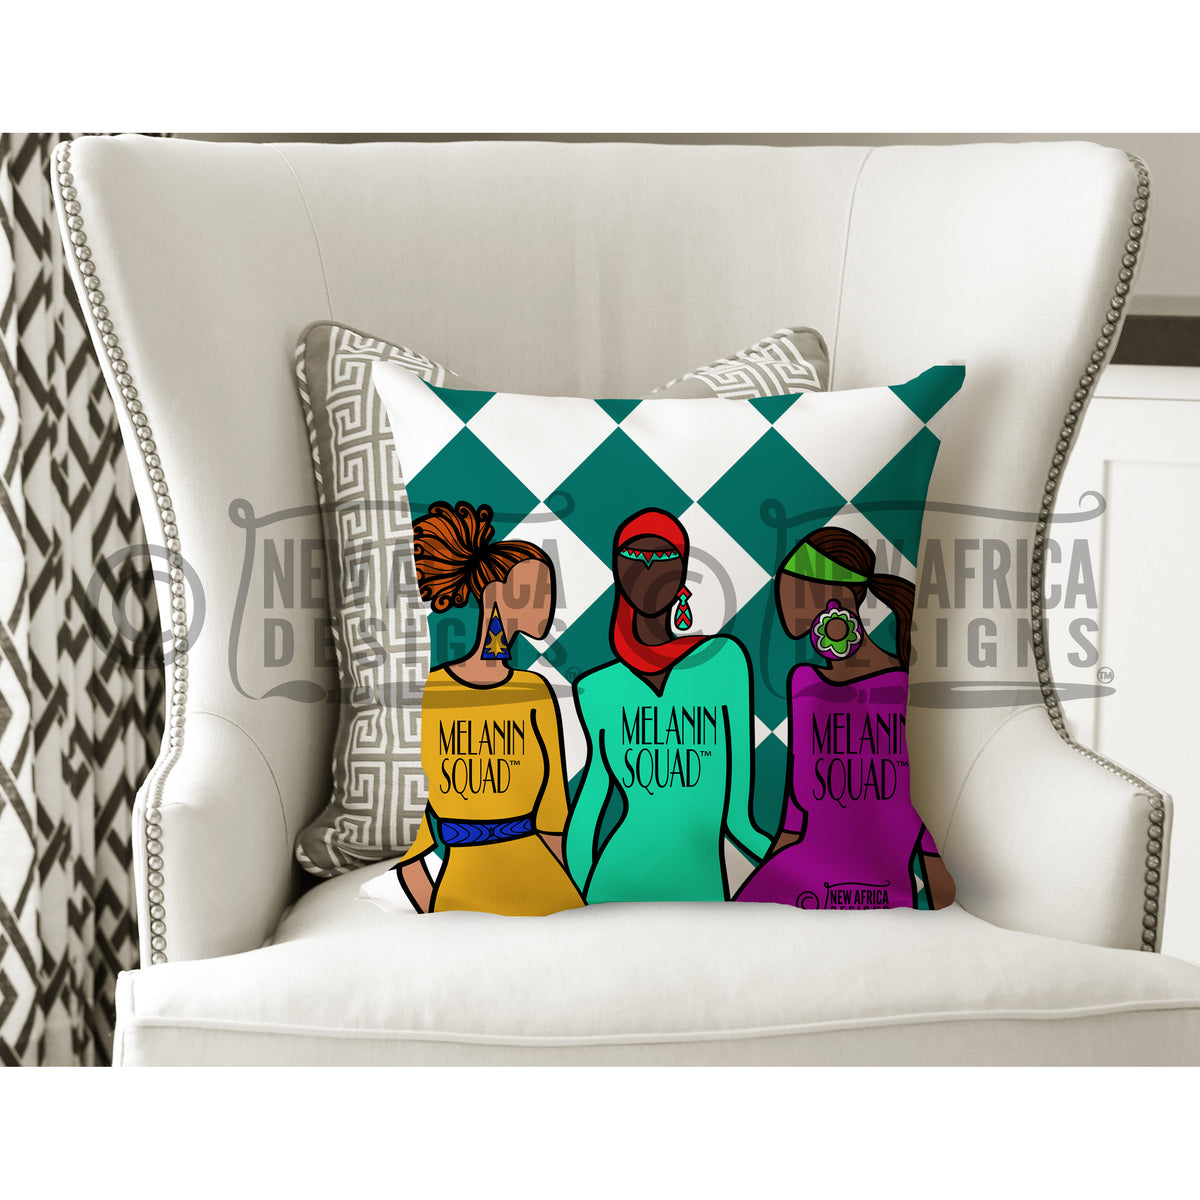 The SISTERHOOD Pillow